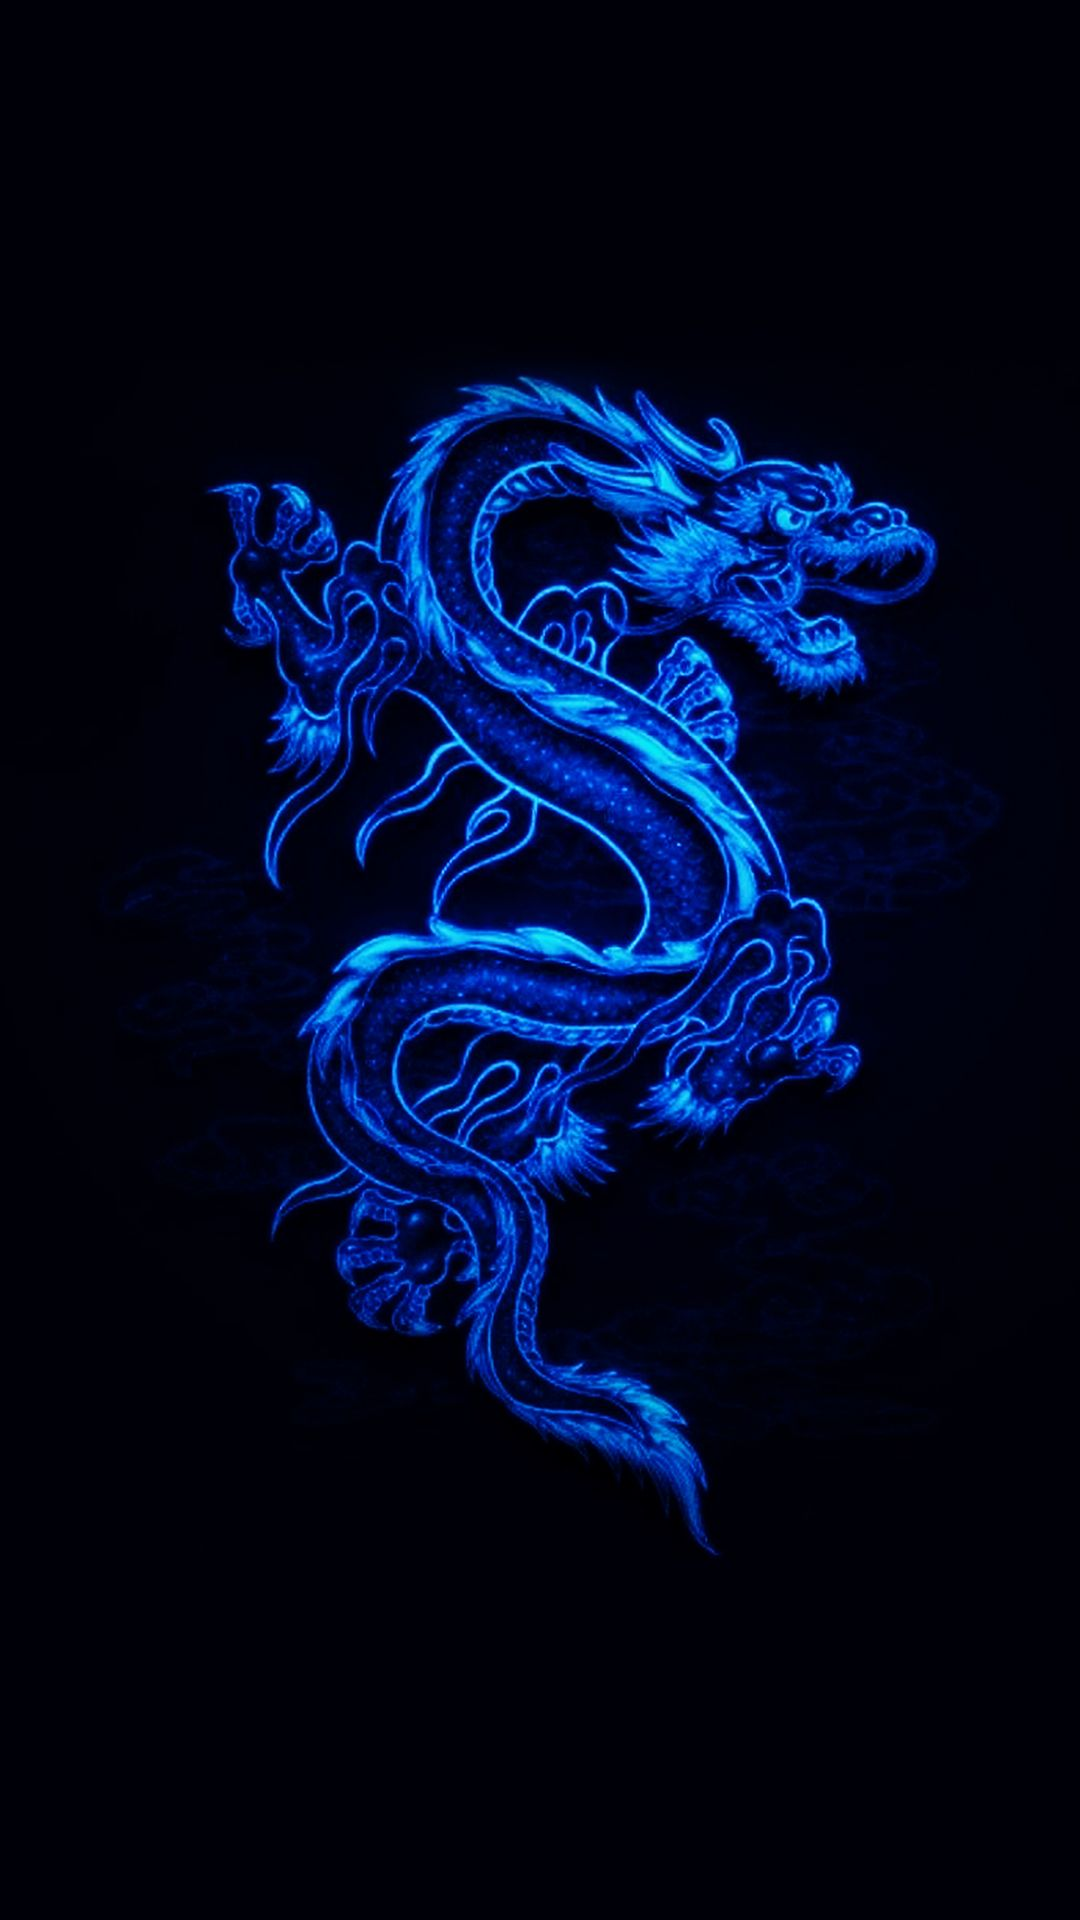 Dragon wallpaper images for mobile